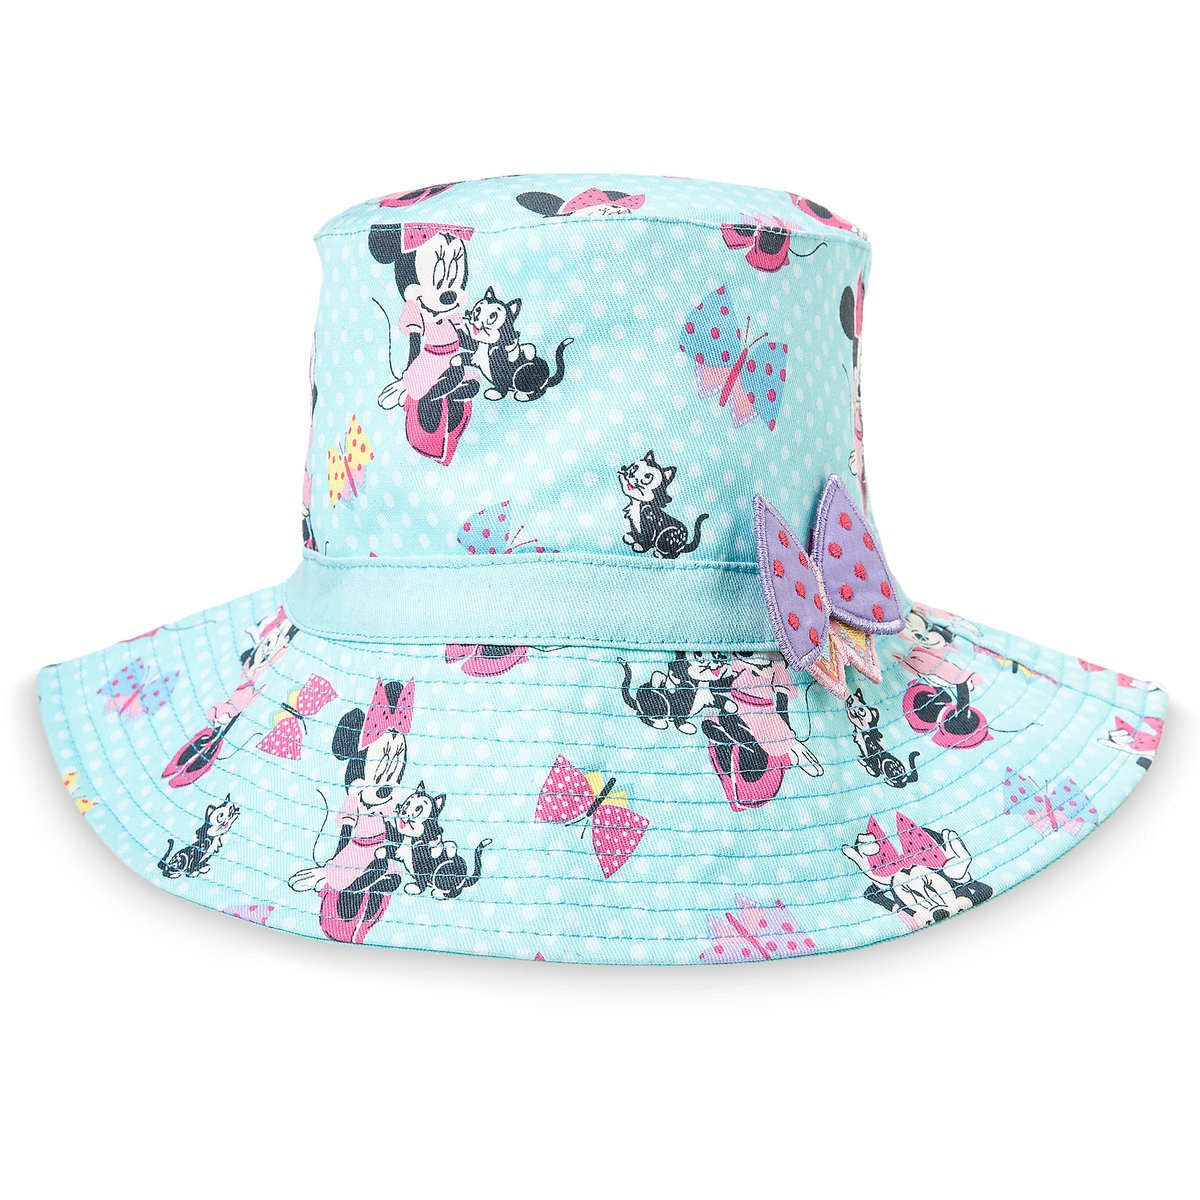 Minnie Mouse Swim Hat for Kids | shopDisney